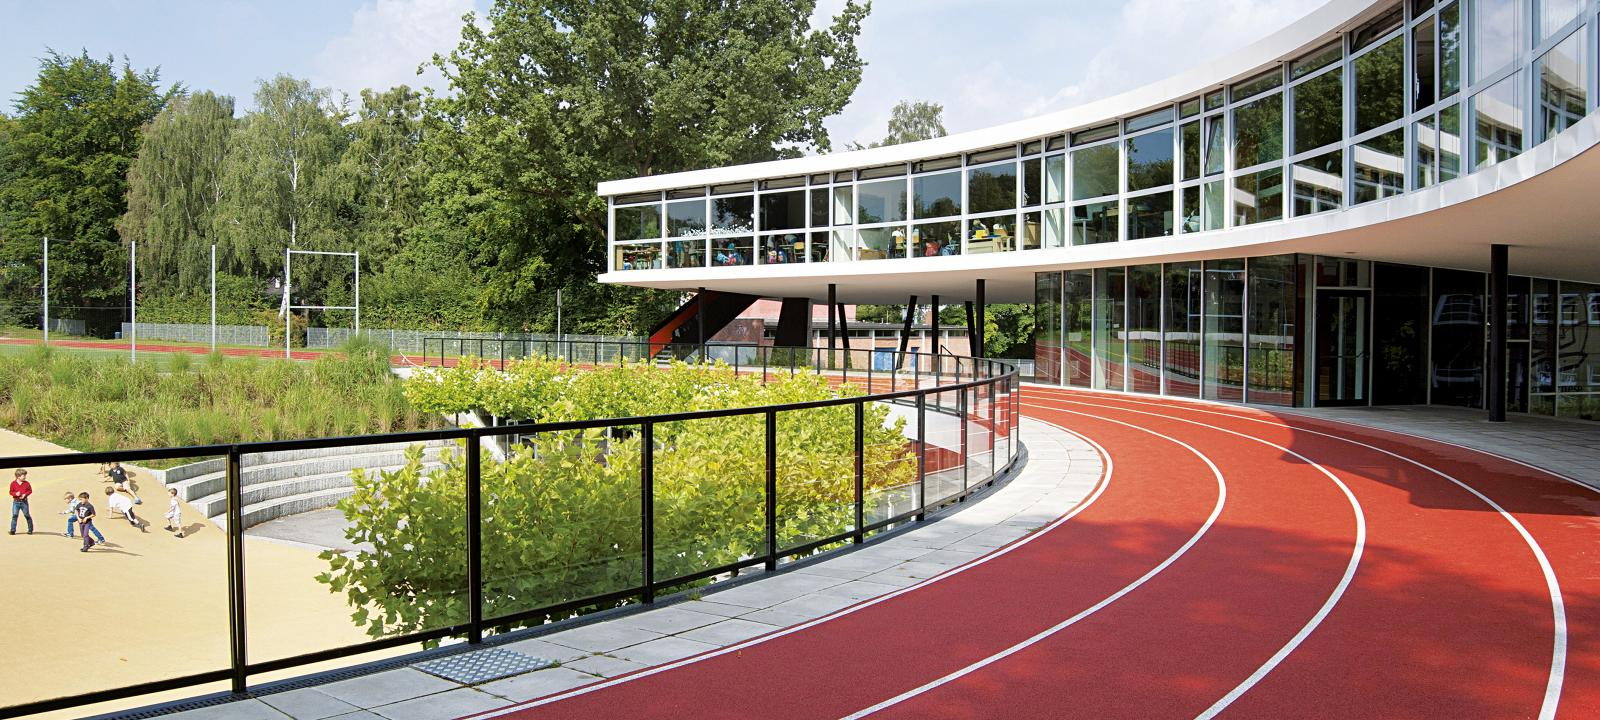 Running track on a roof